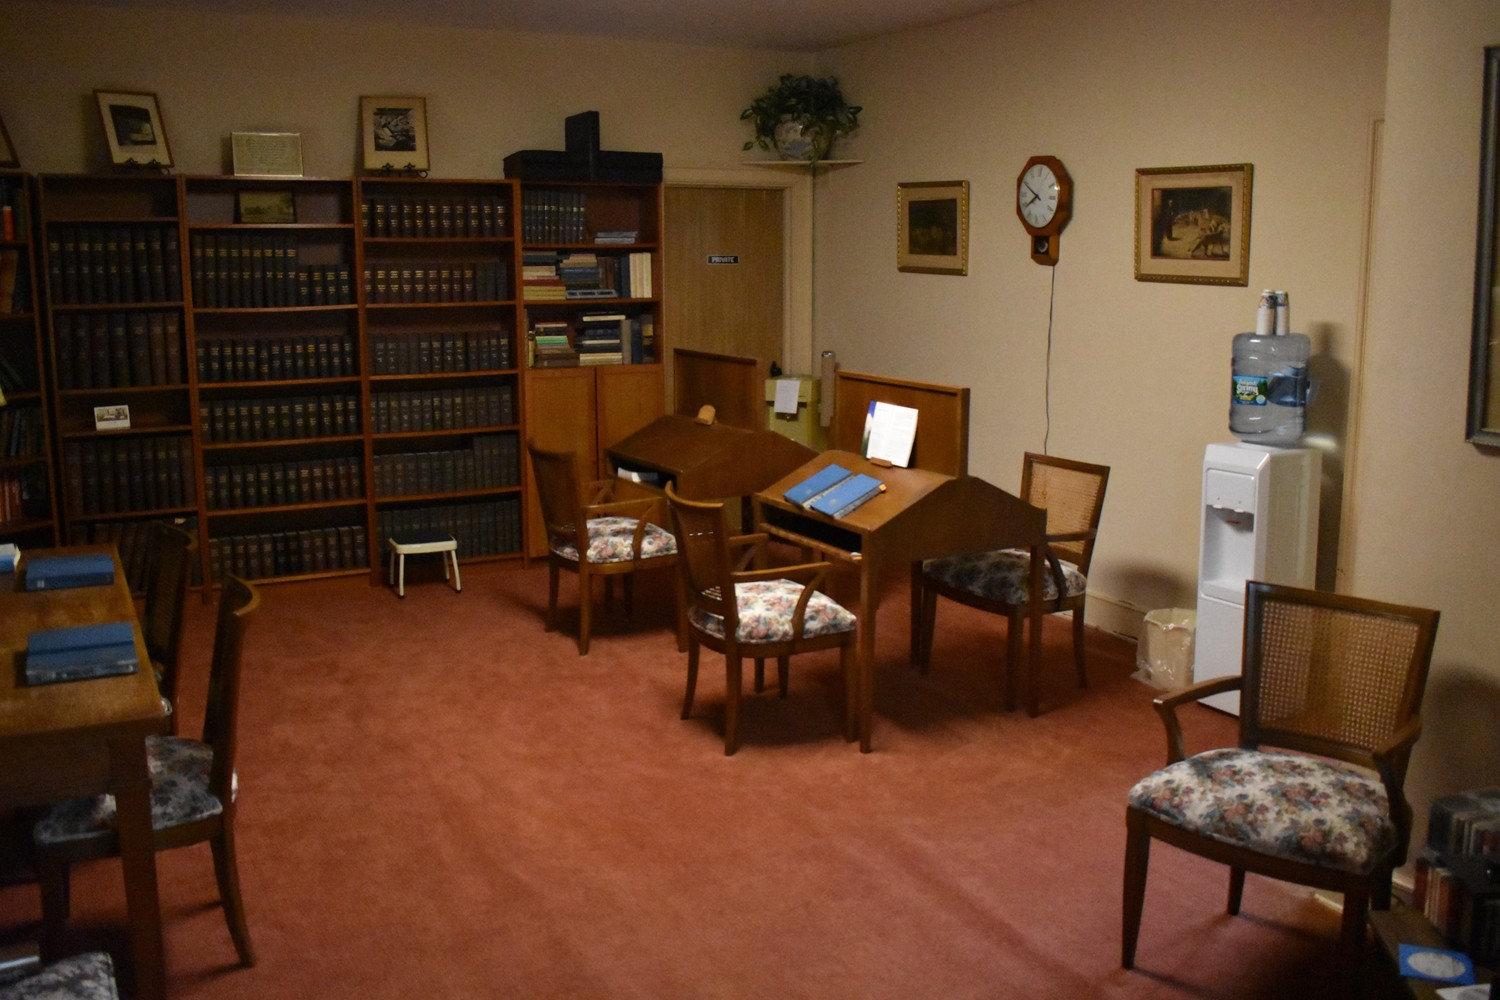 The church has an upstairs reading room.